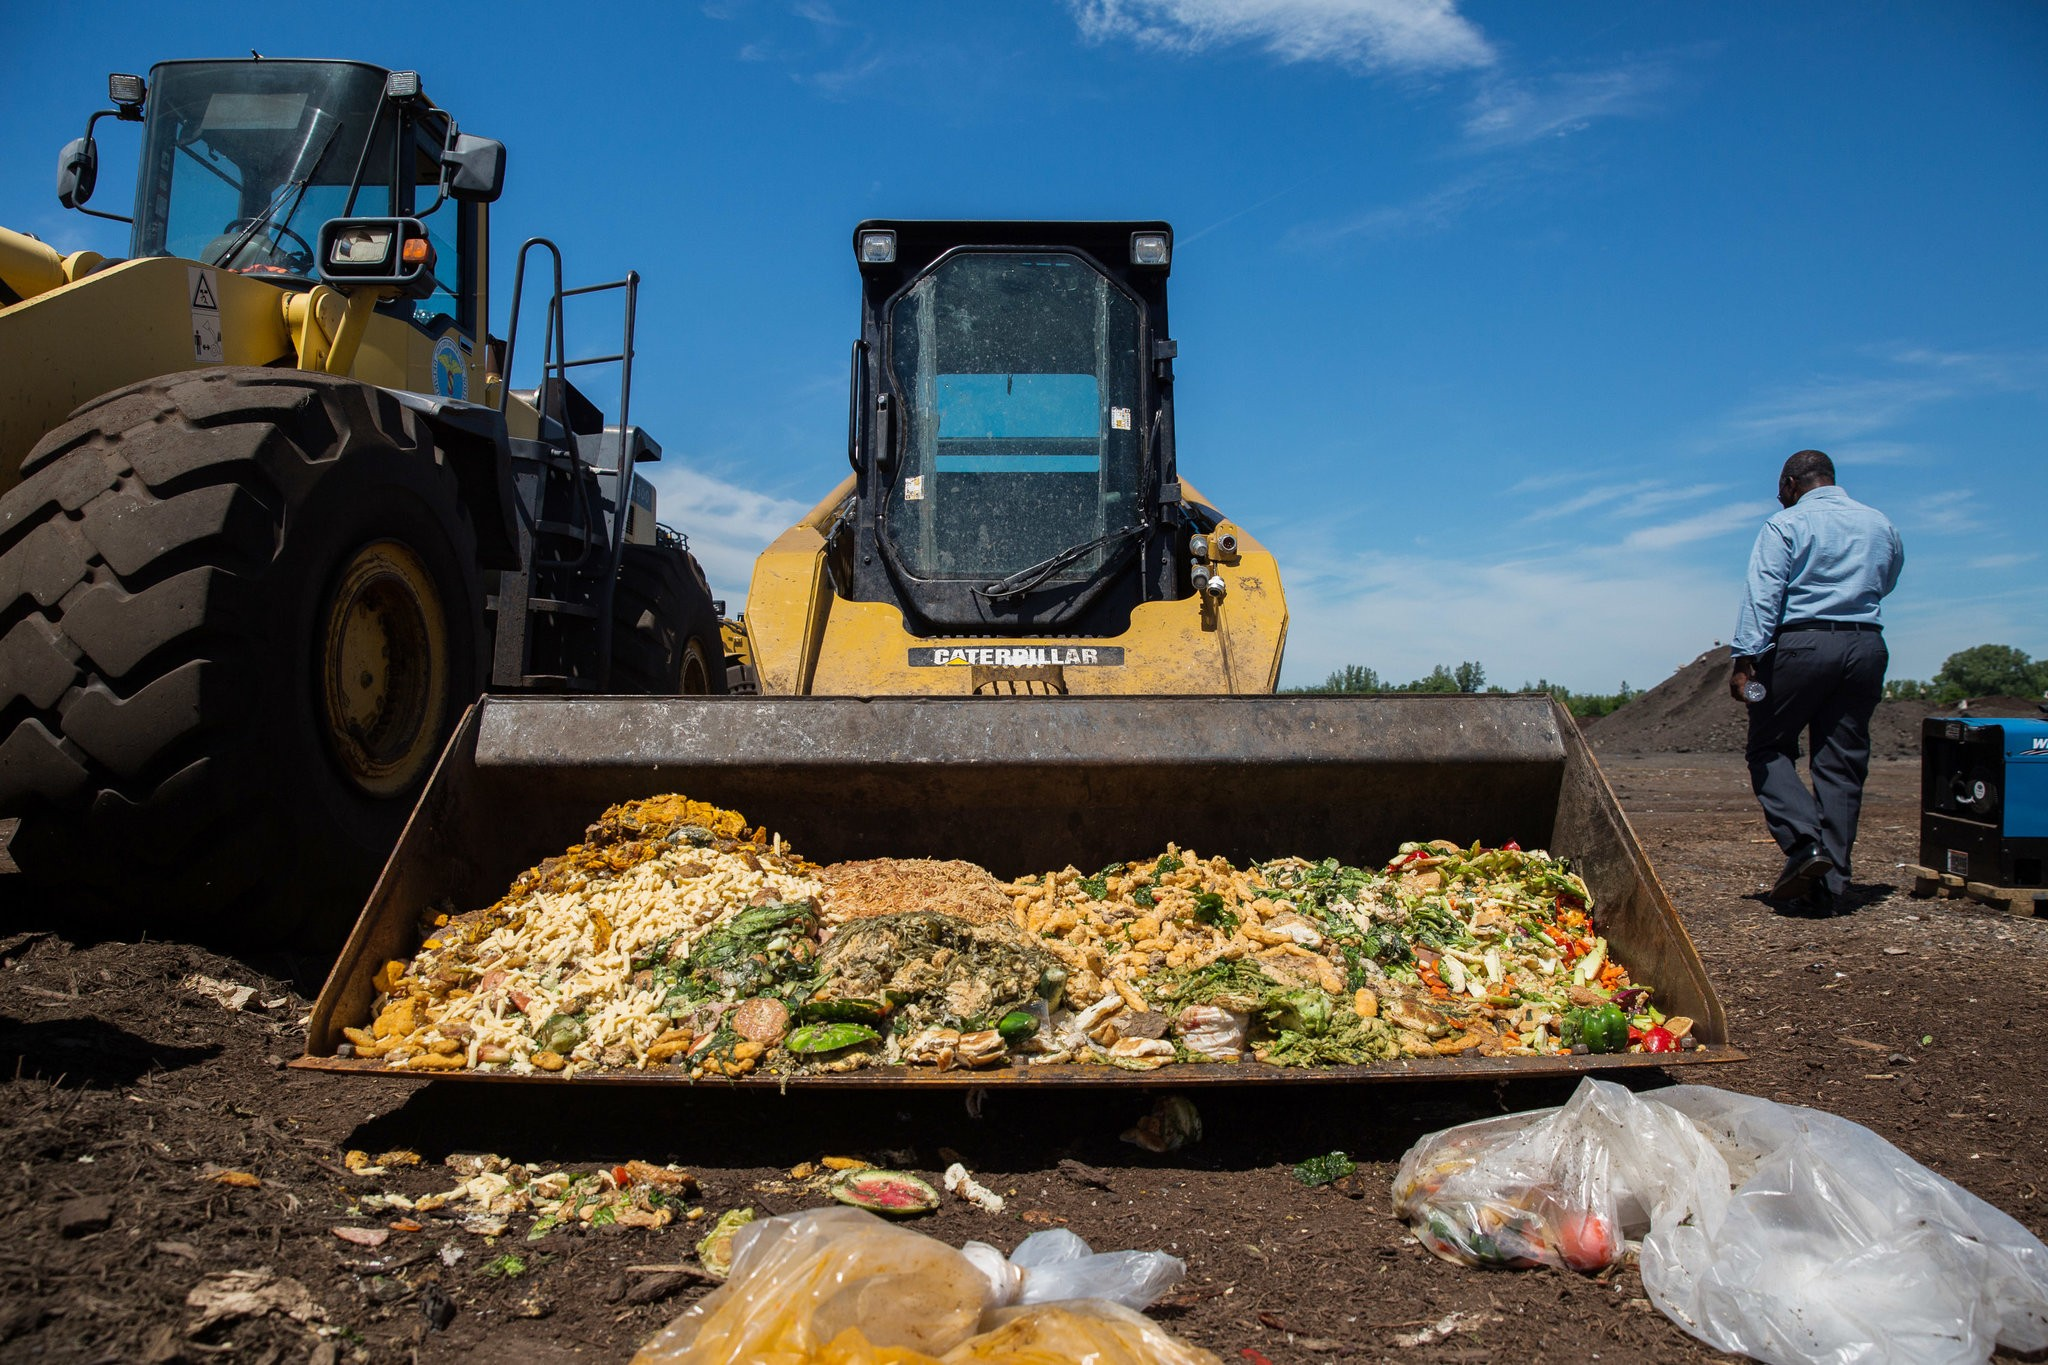 How Much Food Do We Waste? Probably More Than you Think - The less the world wastes, the easier it will be to meet the food [...]